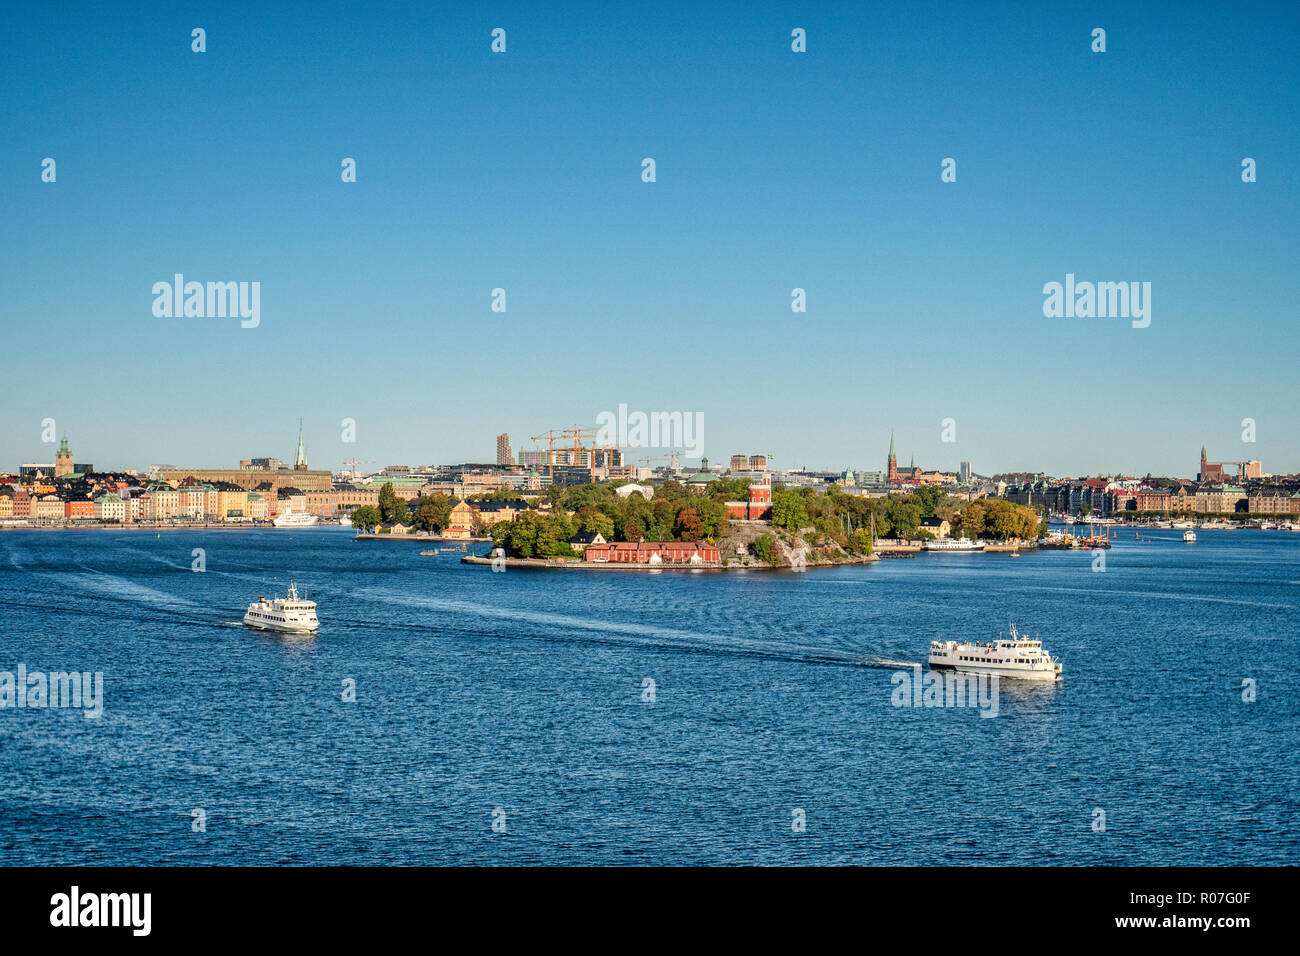 16 September 2018: Stockholm, Sweden - Ferries in Stockholm Harbour, seen from the deck of a cruise liner. - Stock Image